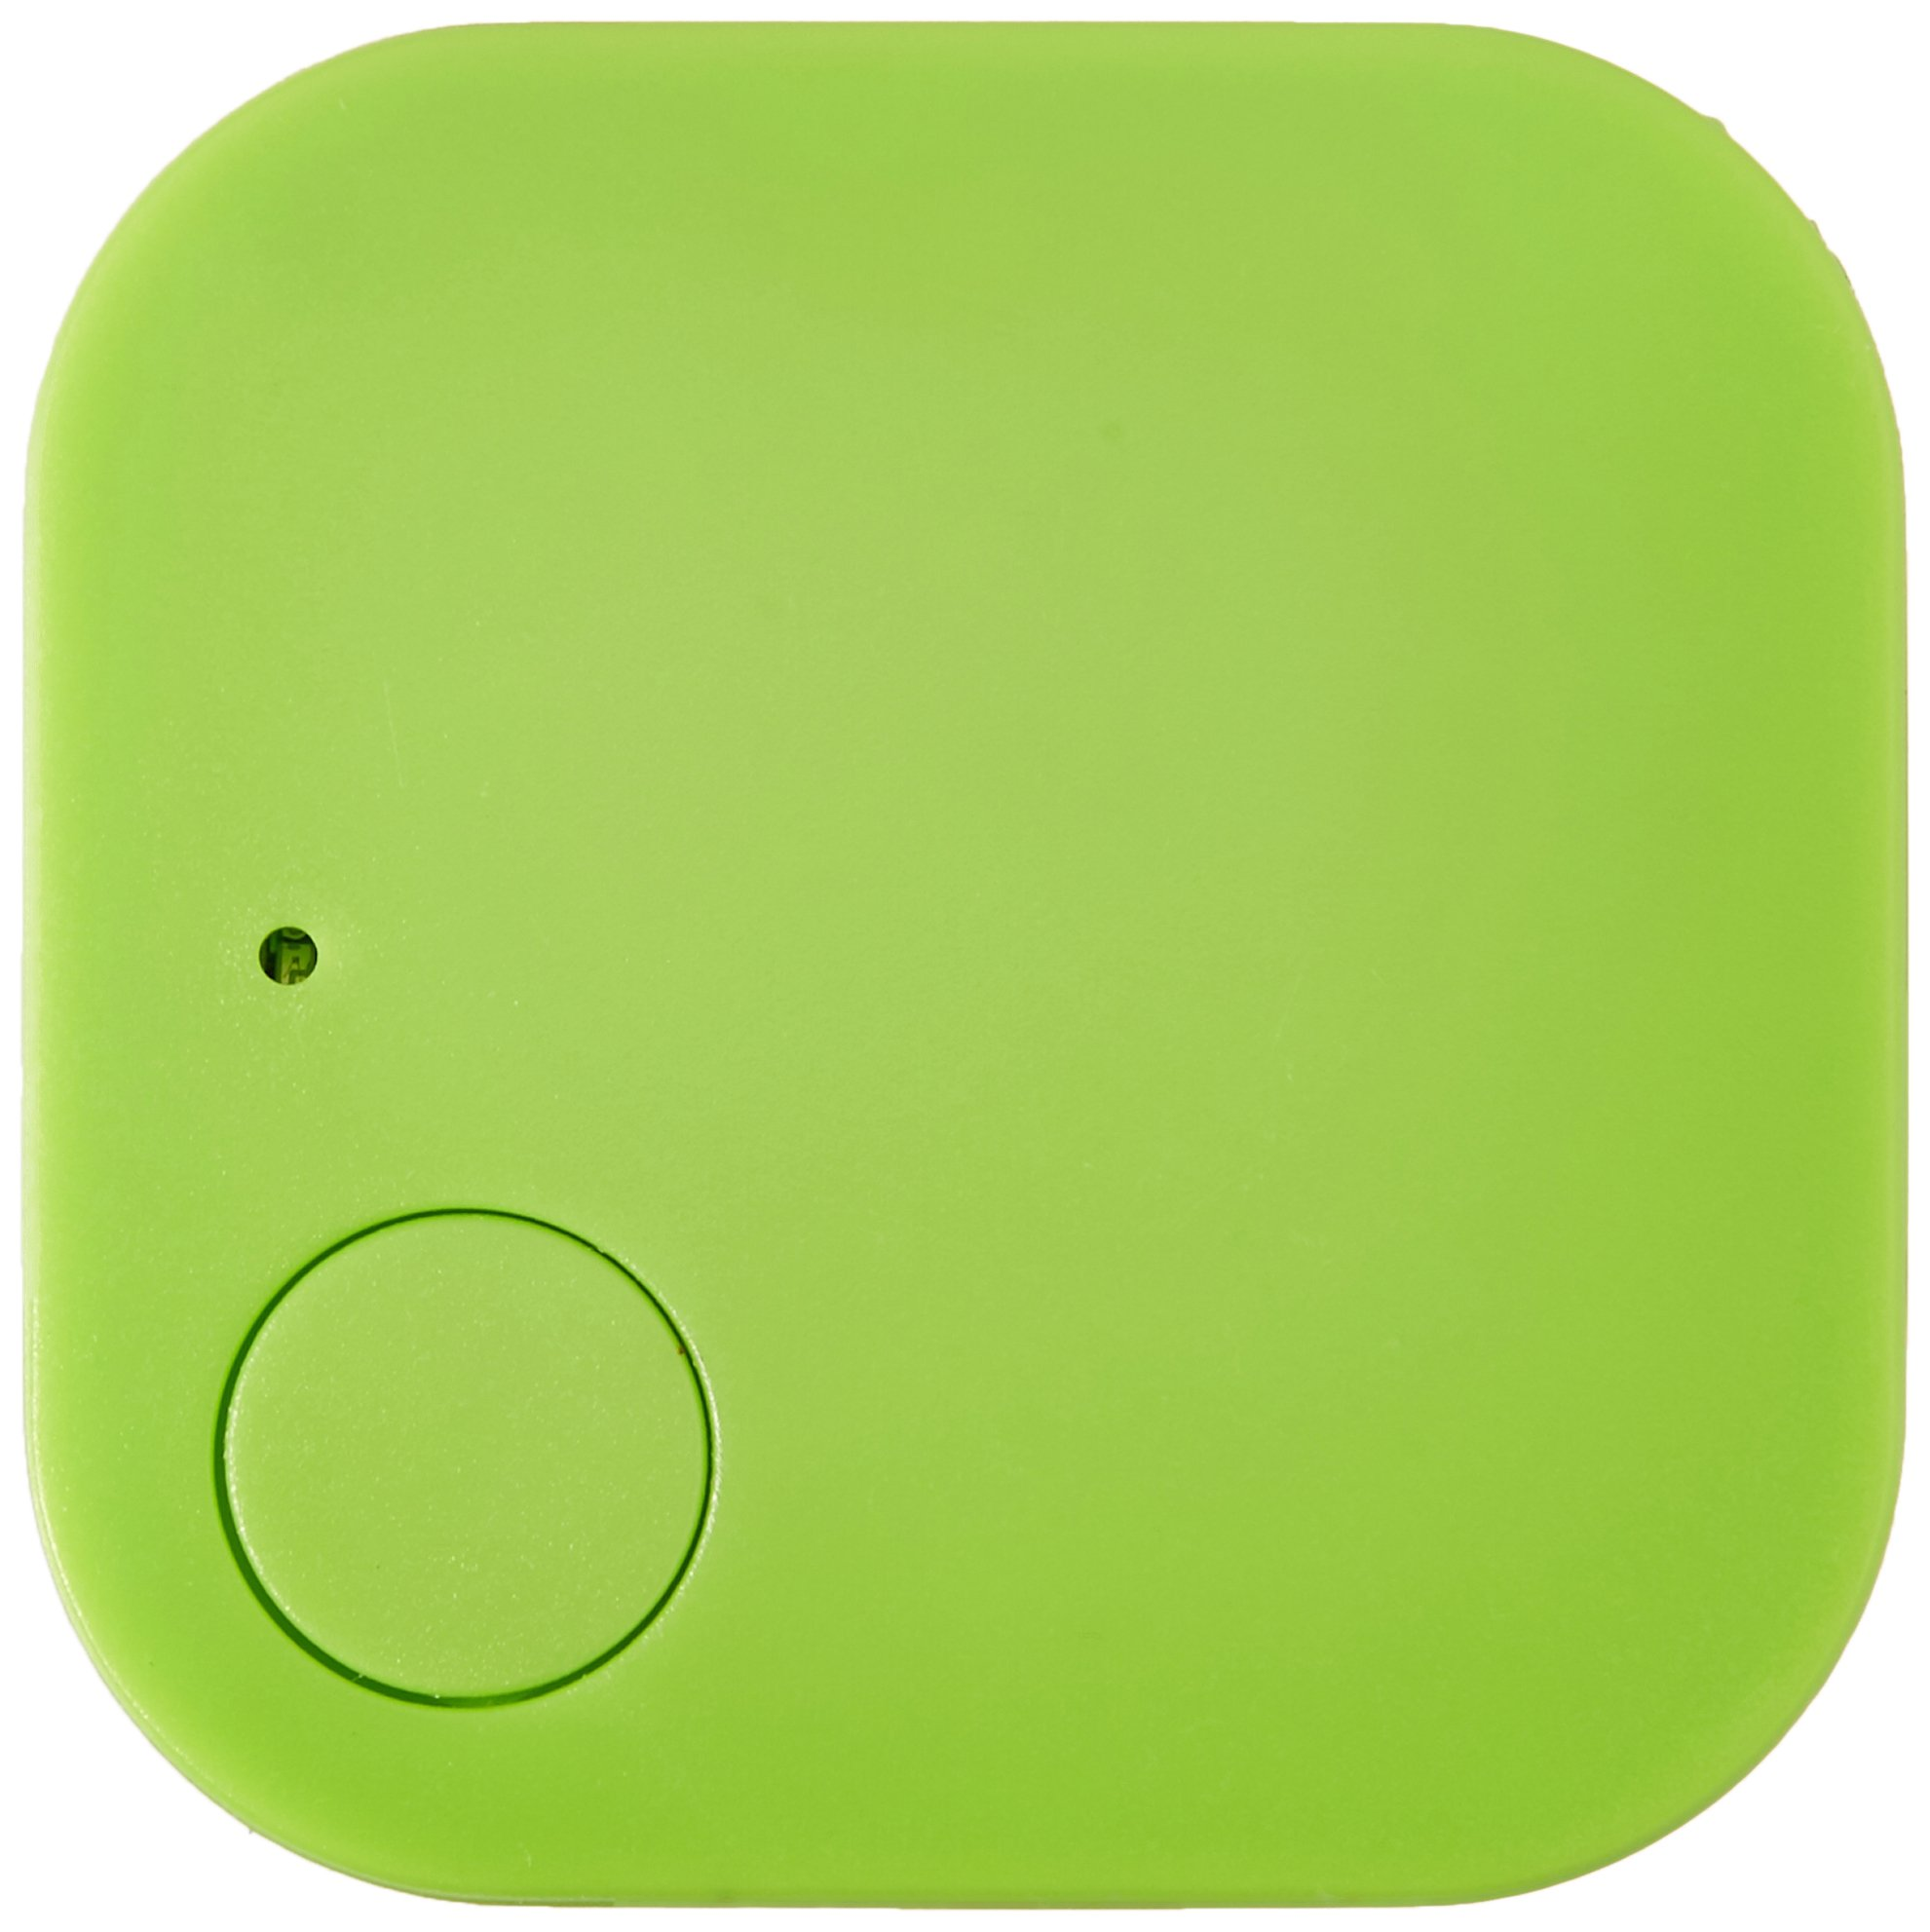 Cococart l170 Smart Tag Bluetooth Anti Lost Tracker Tracking Wallet Key Tracer Key Finder Alarm GPS Locator for iOS/iPhone/iPod/iPad/Android - Green